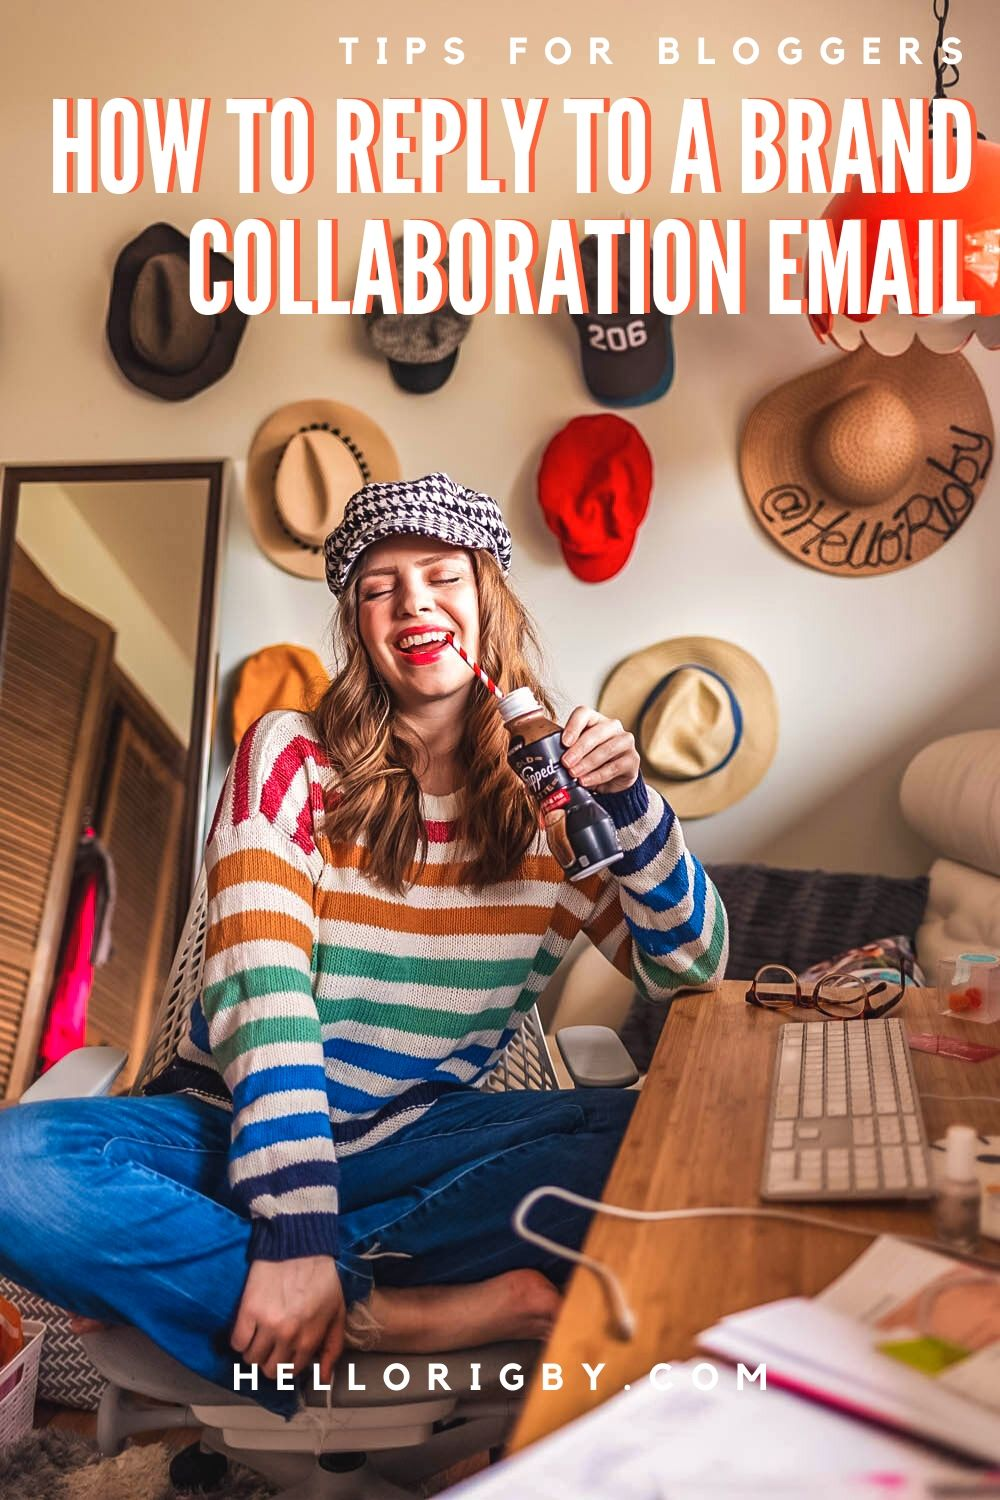 How to Reply to Brand Collaboration Email   Tips for Bloggers